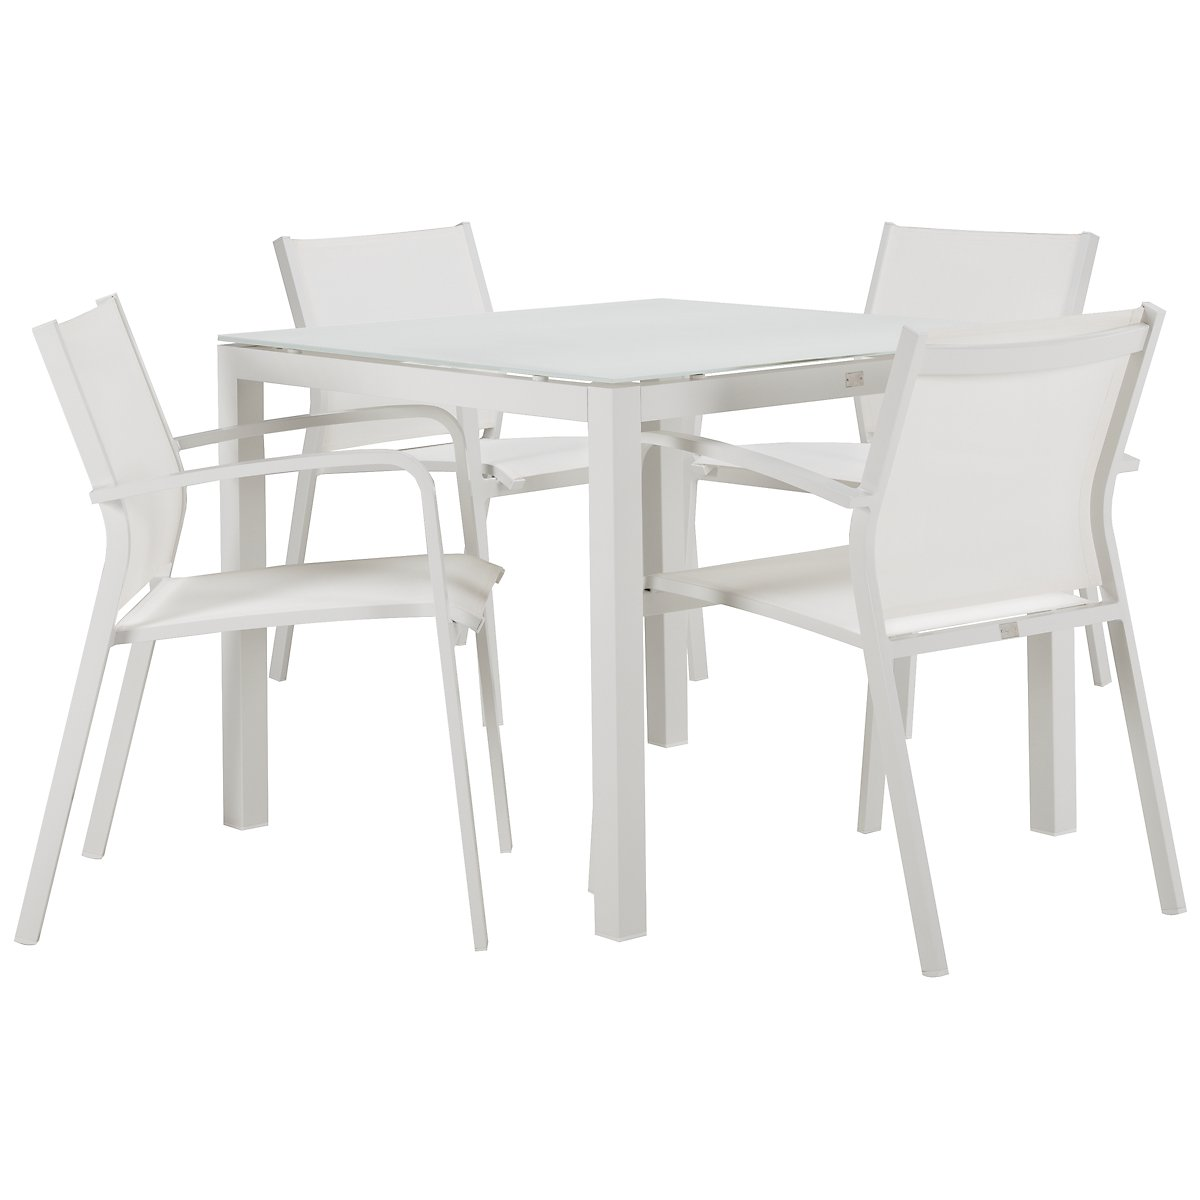 "Lisbon White 36"" Square Table & 4 Chairs"